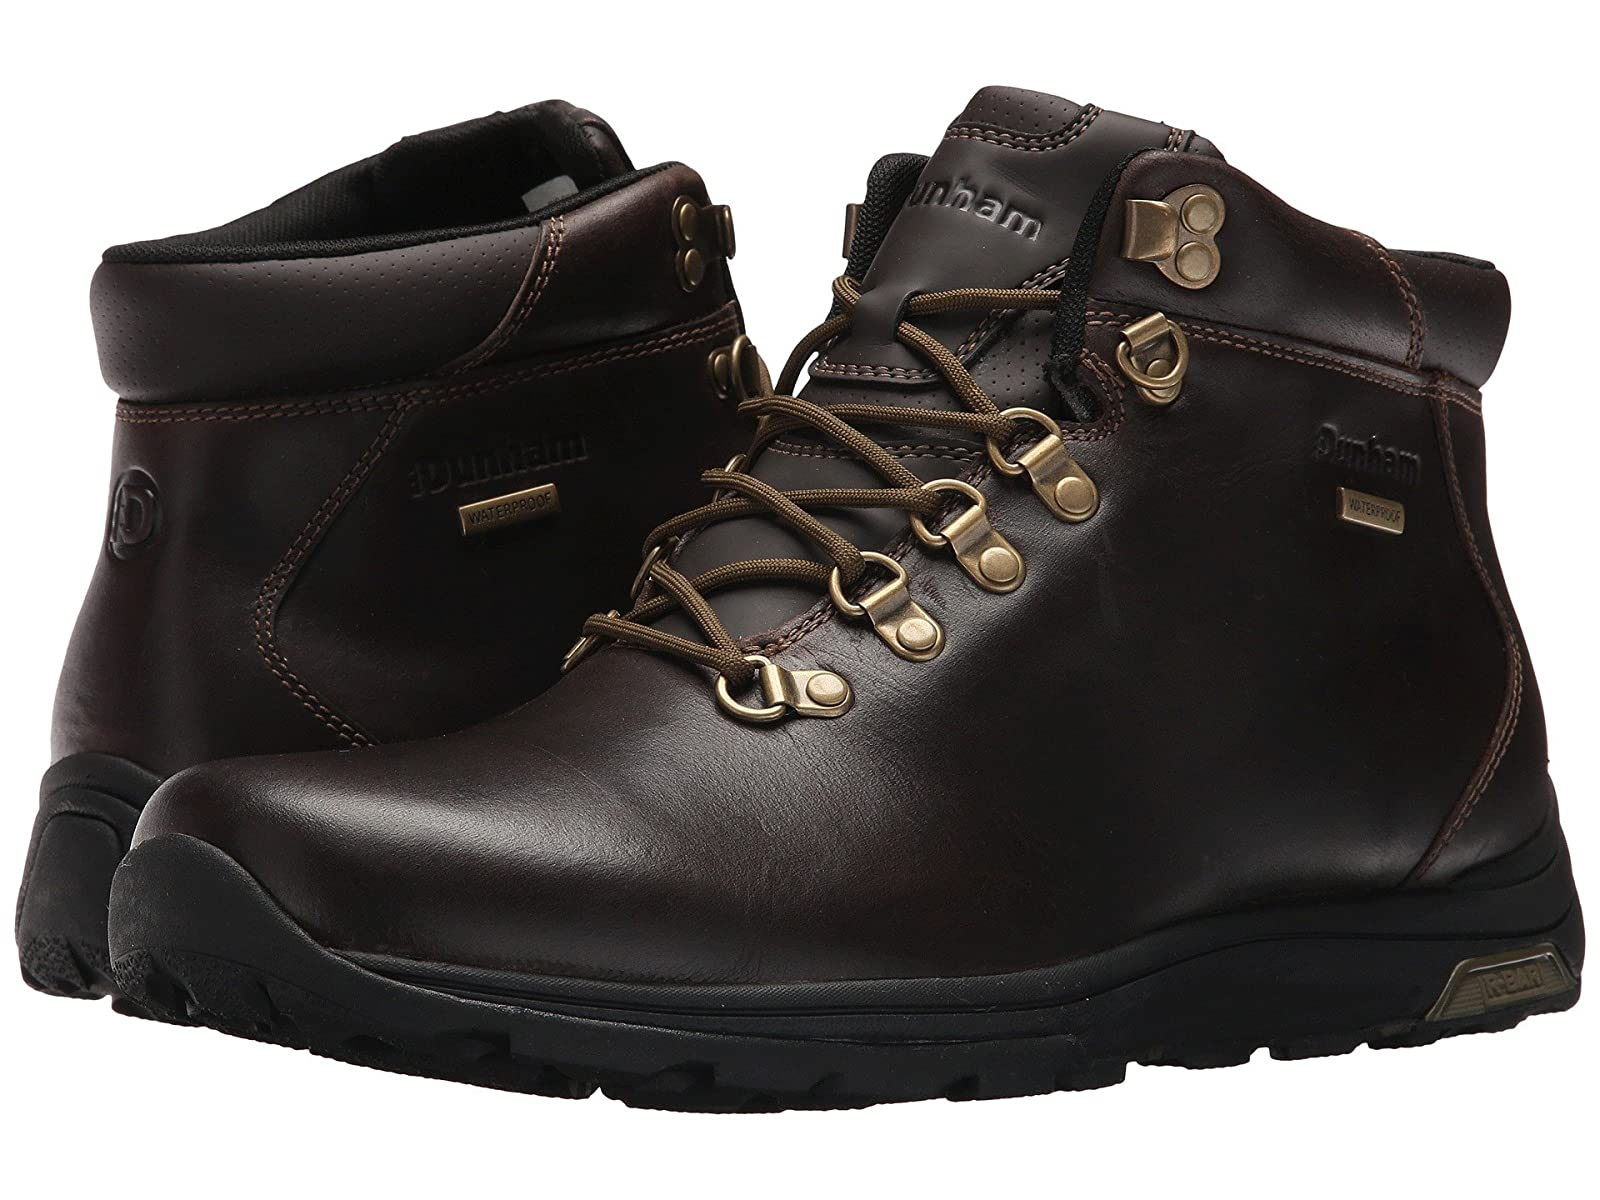 Dunham Trukka Alpine WaterproofAffordable and distinctive shoes